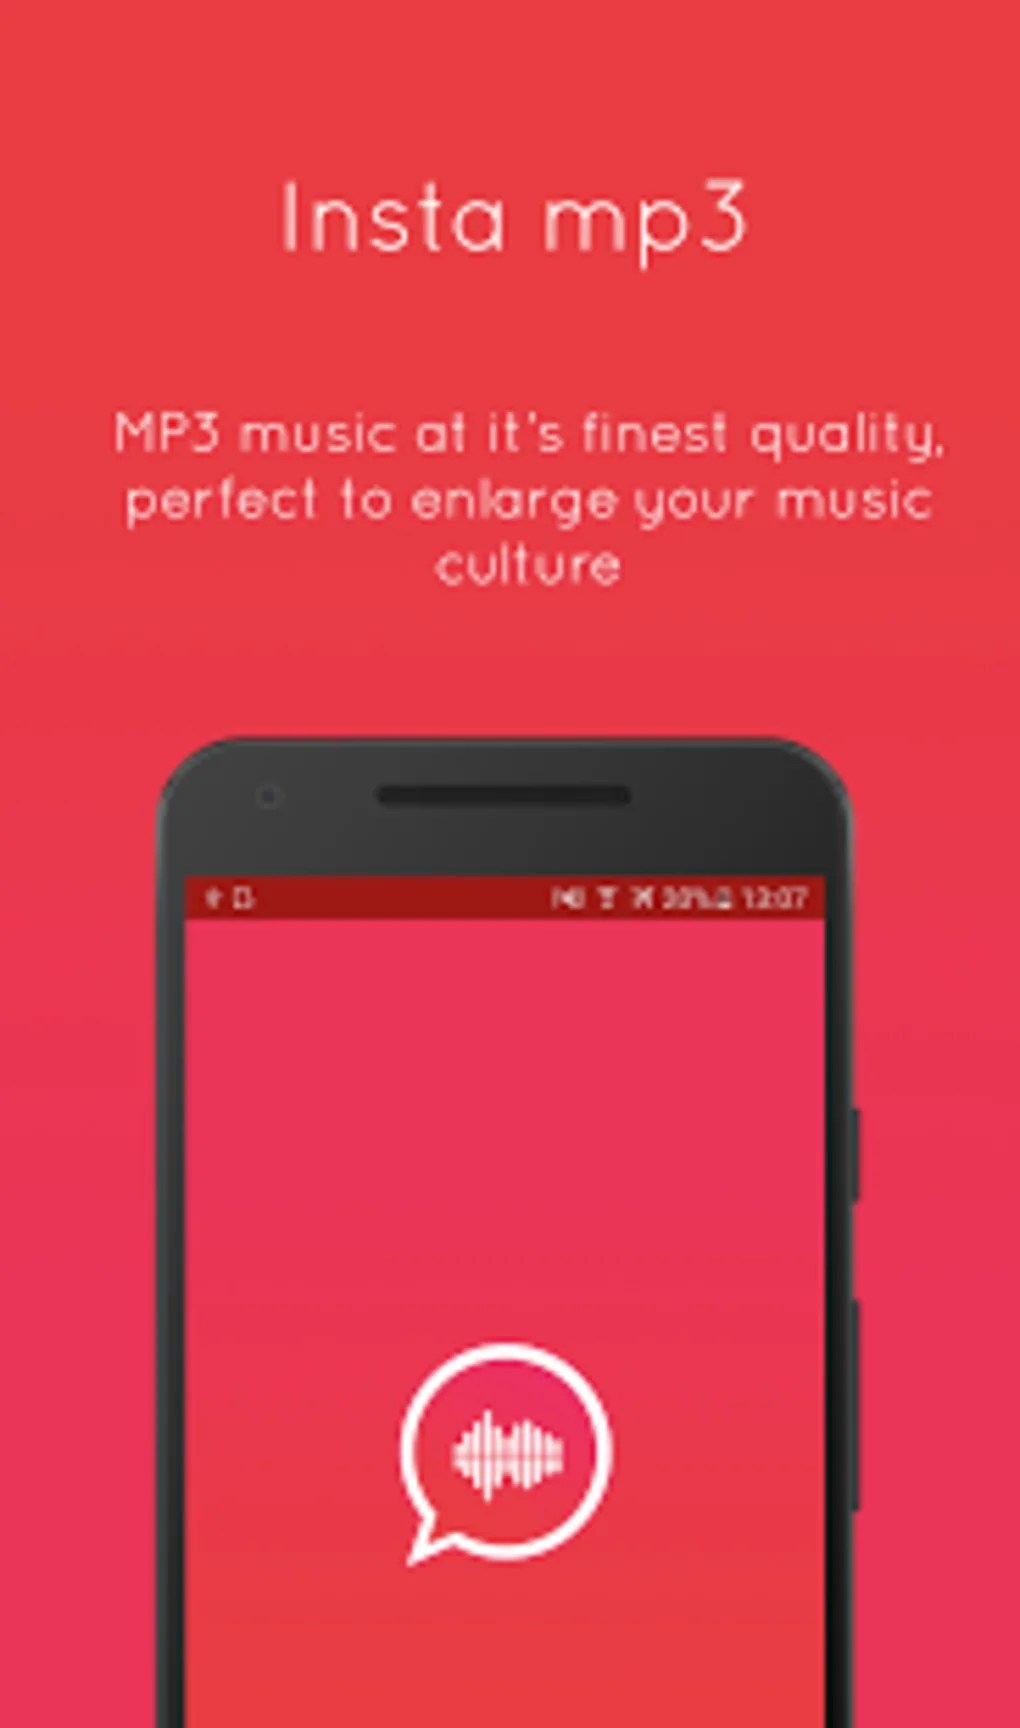 Insta Mp3 Music Download : insta, music, download, Insta, Download, Android